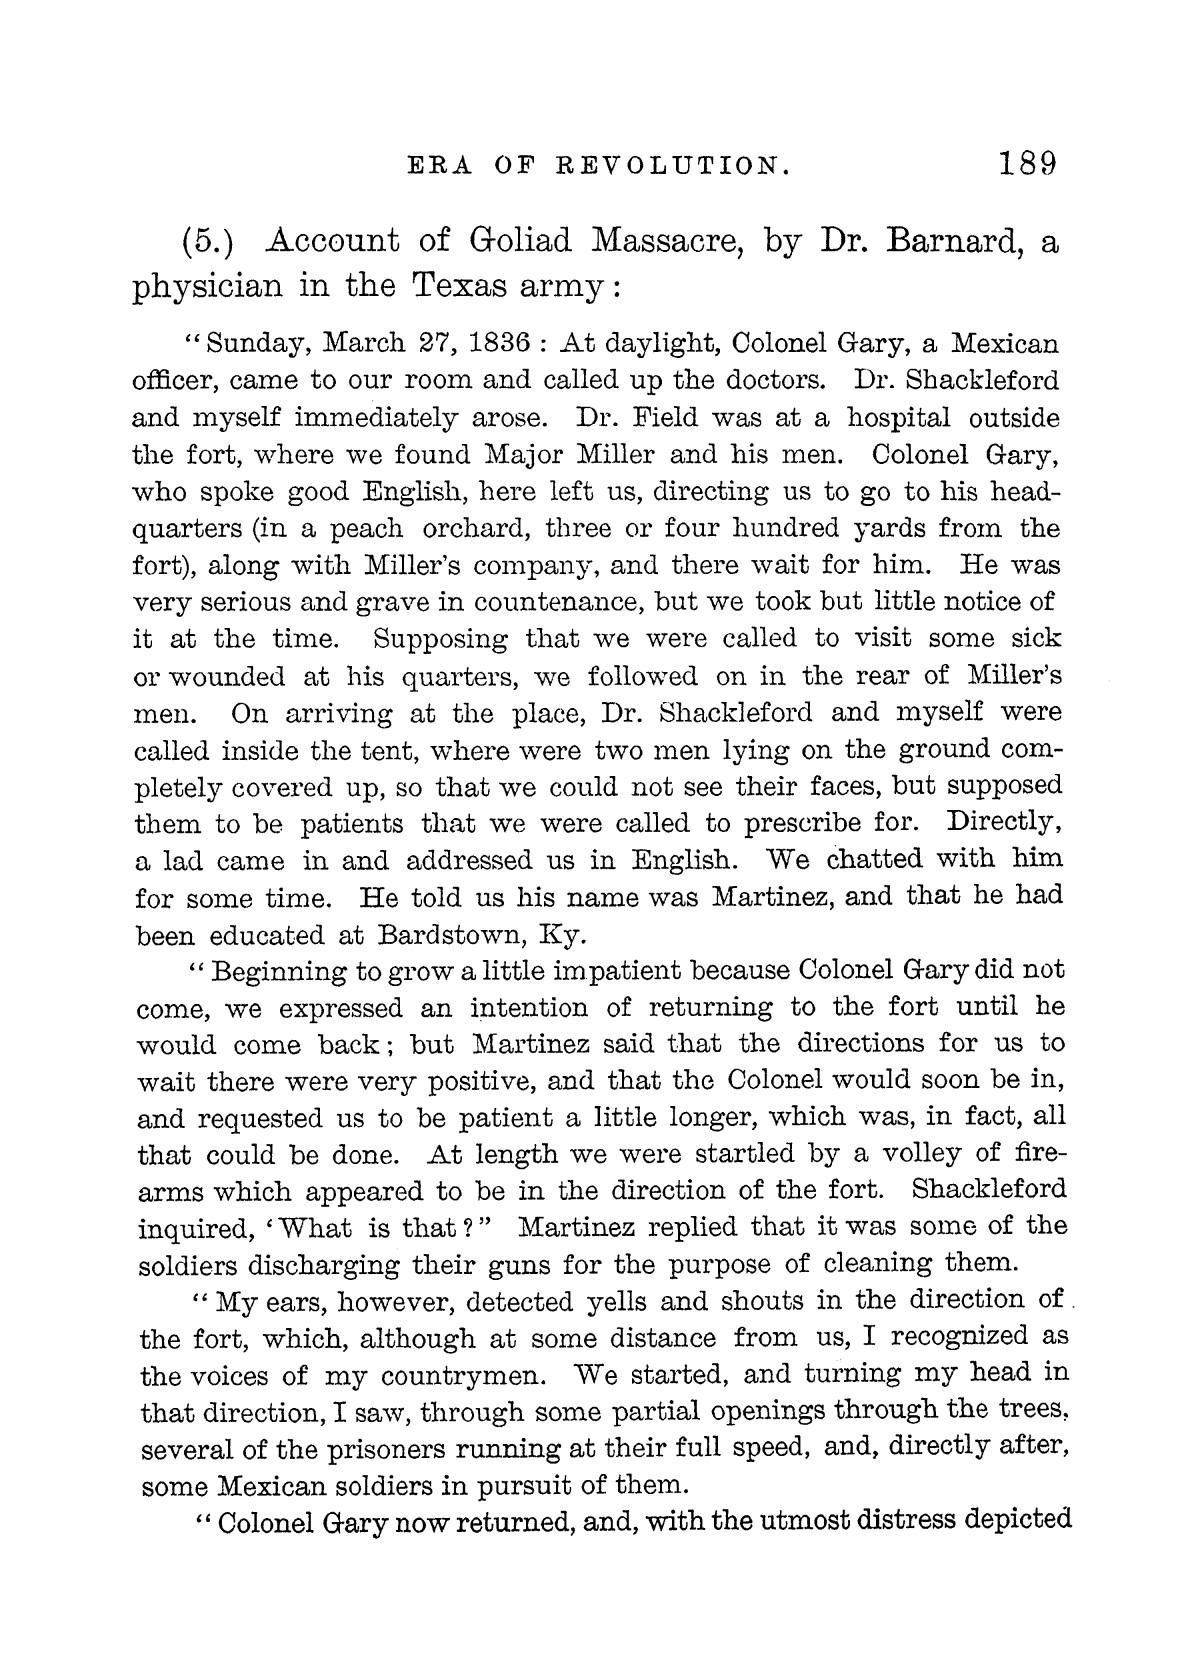 A new history of Texas for schools : also for general reading and for teachers preparing themselves for examination                                                                                                      [Sequence #]: 205 of 412